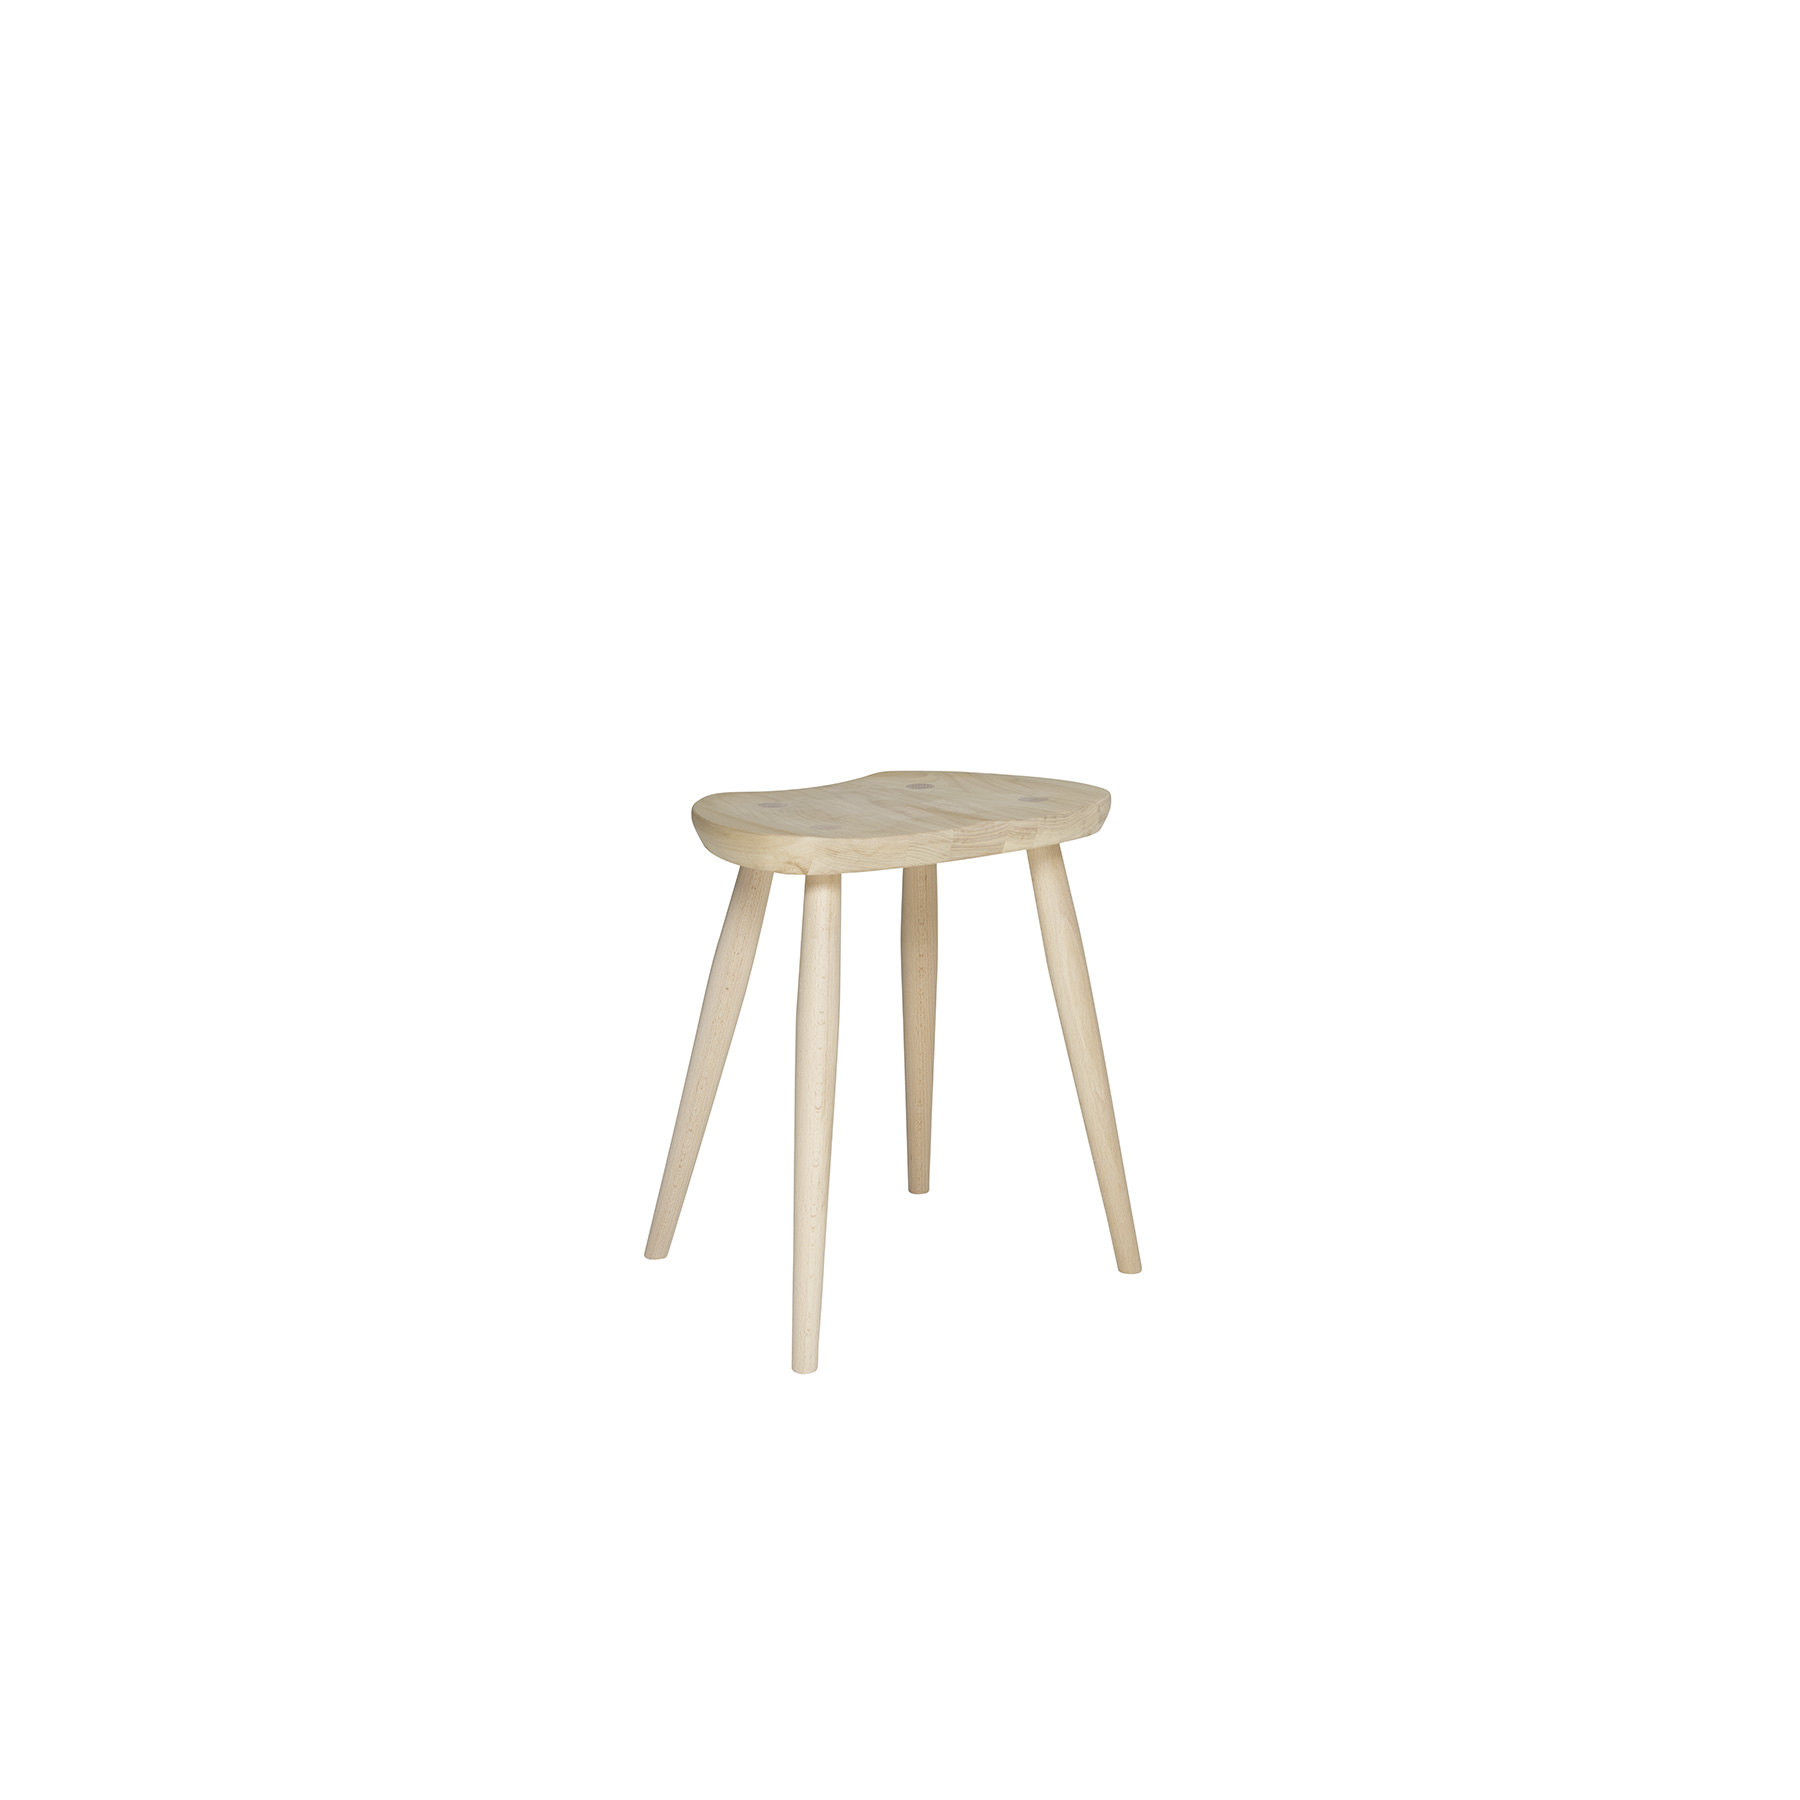 Originals Windsor Saddle Stool - The Ercol Originals are pieces of timeless and classic design that never date or show their age. It is furniture that is as relevant and as functional now as it was when it was created in the 1950s and 1960s. This furniture was designed by Ercol's founder, Lucian Ercolani, who drew for his inspiration on the time-proven local design and craft in the Chiltern Hills around where he lived and built his first factory in 1920 in High Wycombe. Using the strength of beech and the beauty of elm he carried this definition on into a huge variety of dining, kitchen, and school chairs and then extended the idiom into the low easy chair range epitomised by the 206 armchair and the studio couch. The beauty of the colour and the grain of the elm took Lucian on to use elm for the tables and cabinets of the Originals and the following Windsor range.   | Matter of Stuff